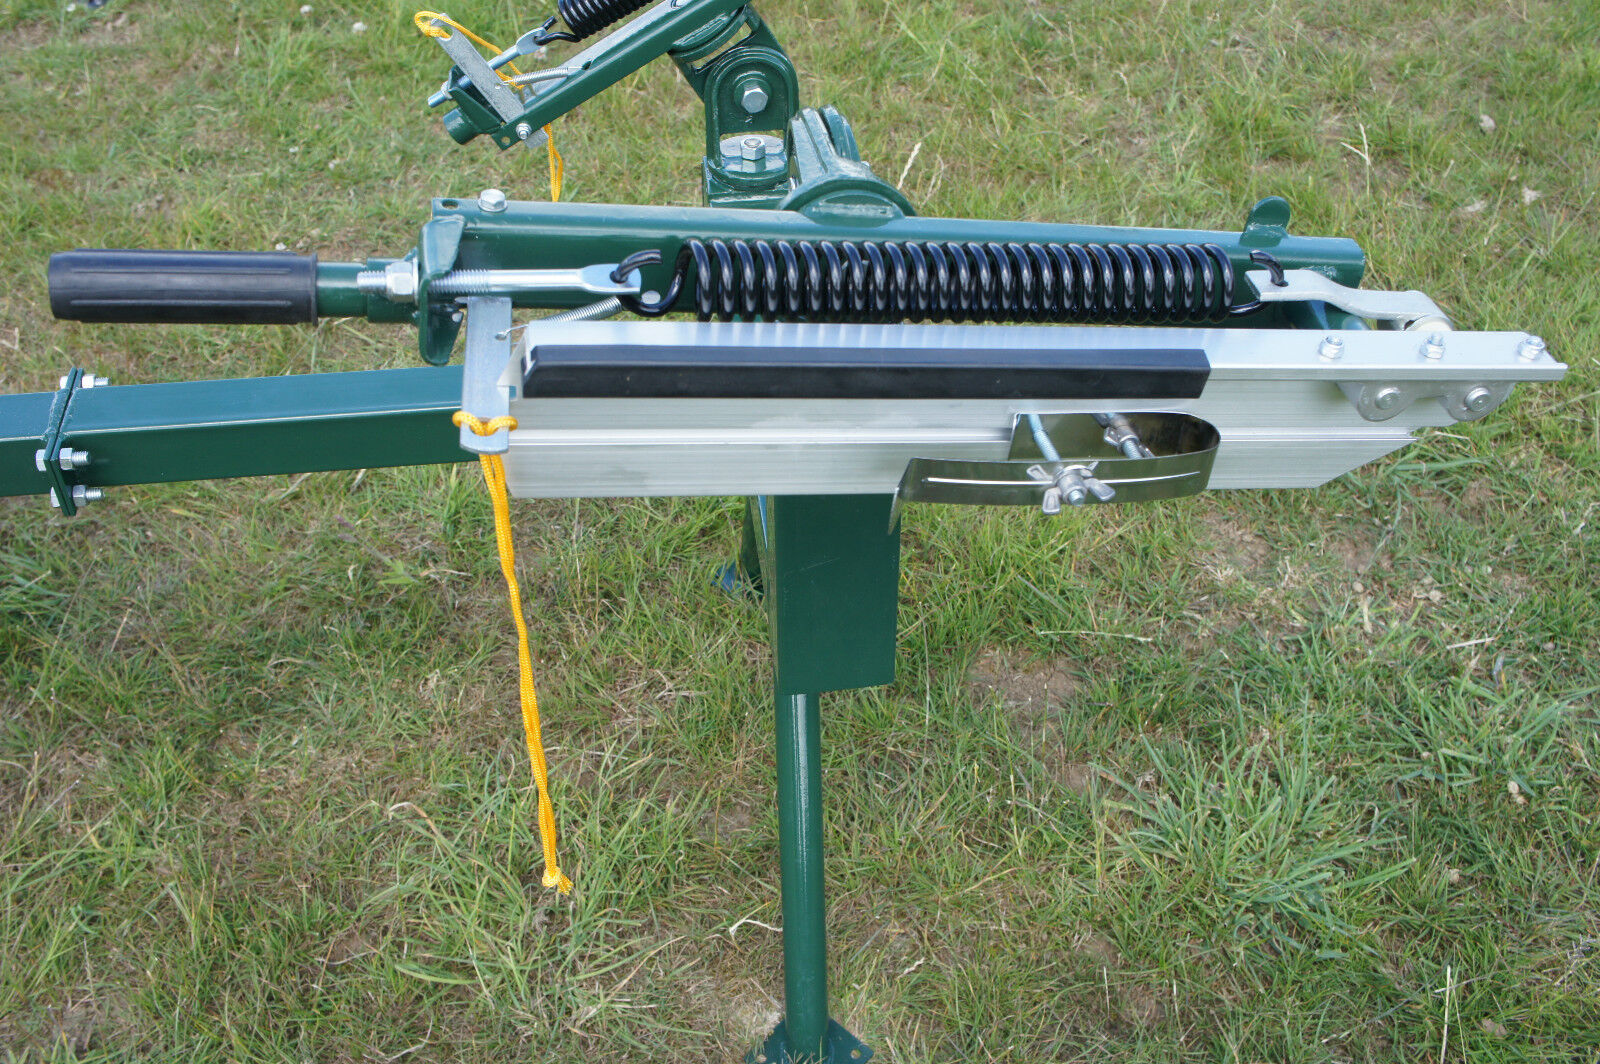 Double Arm Manual Seated Clay Pigeon Trapclay Target Thrower